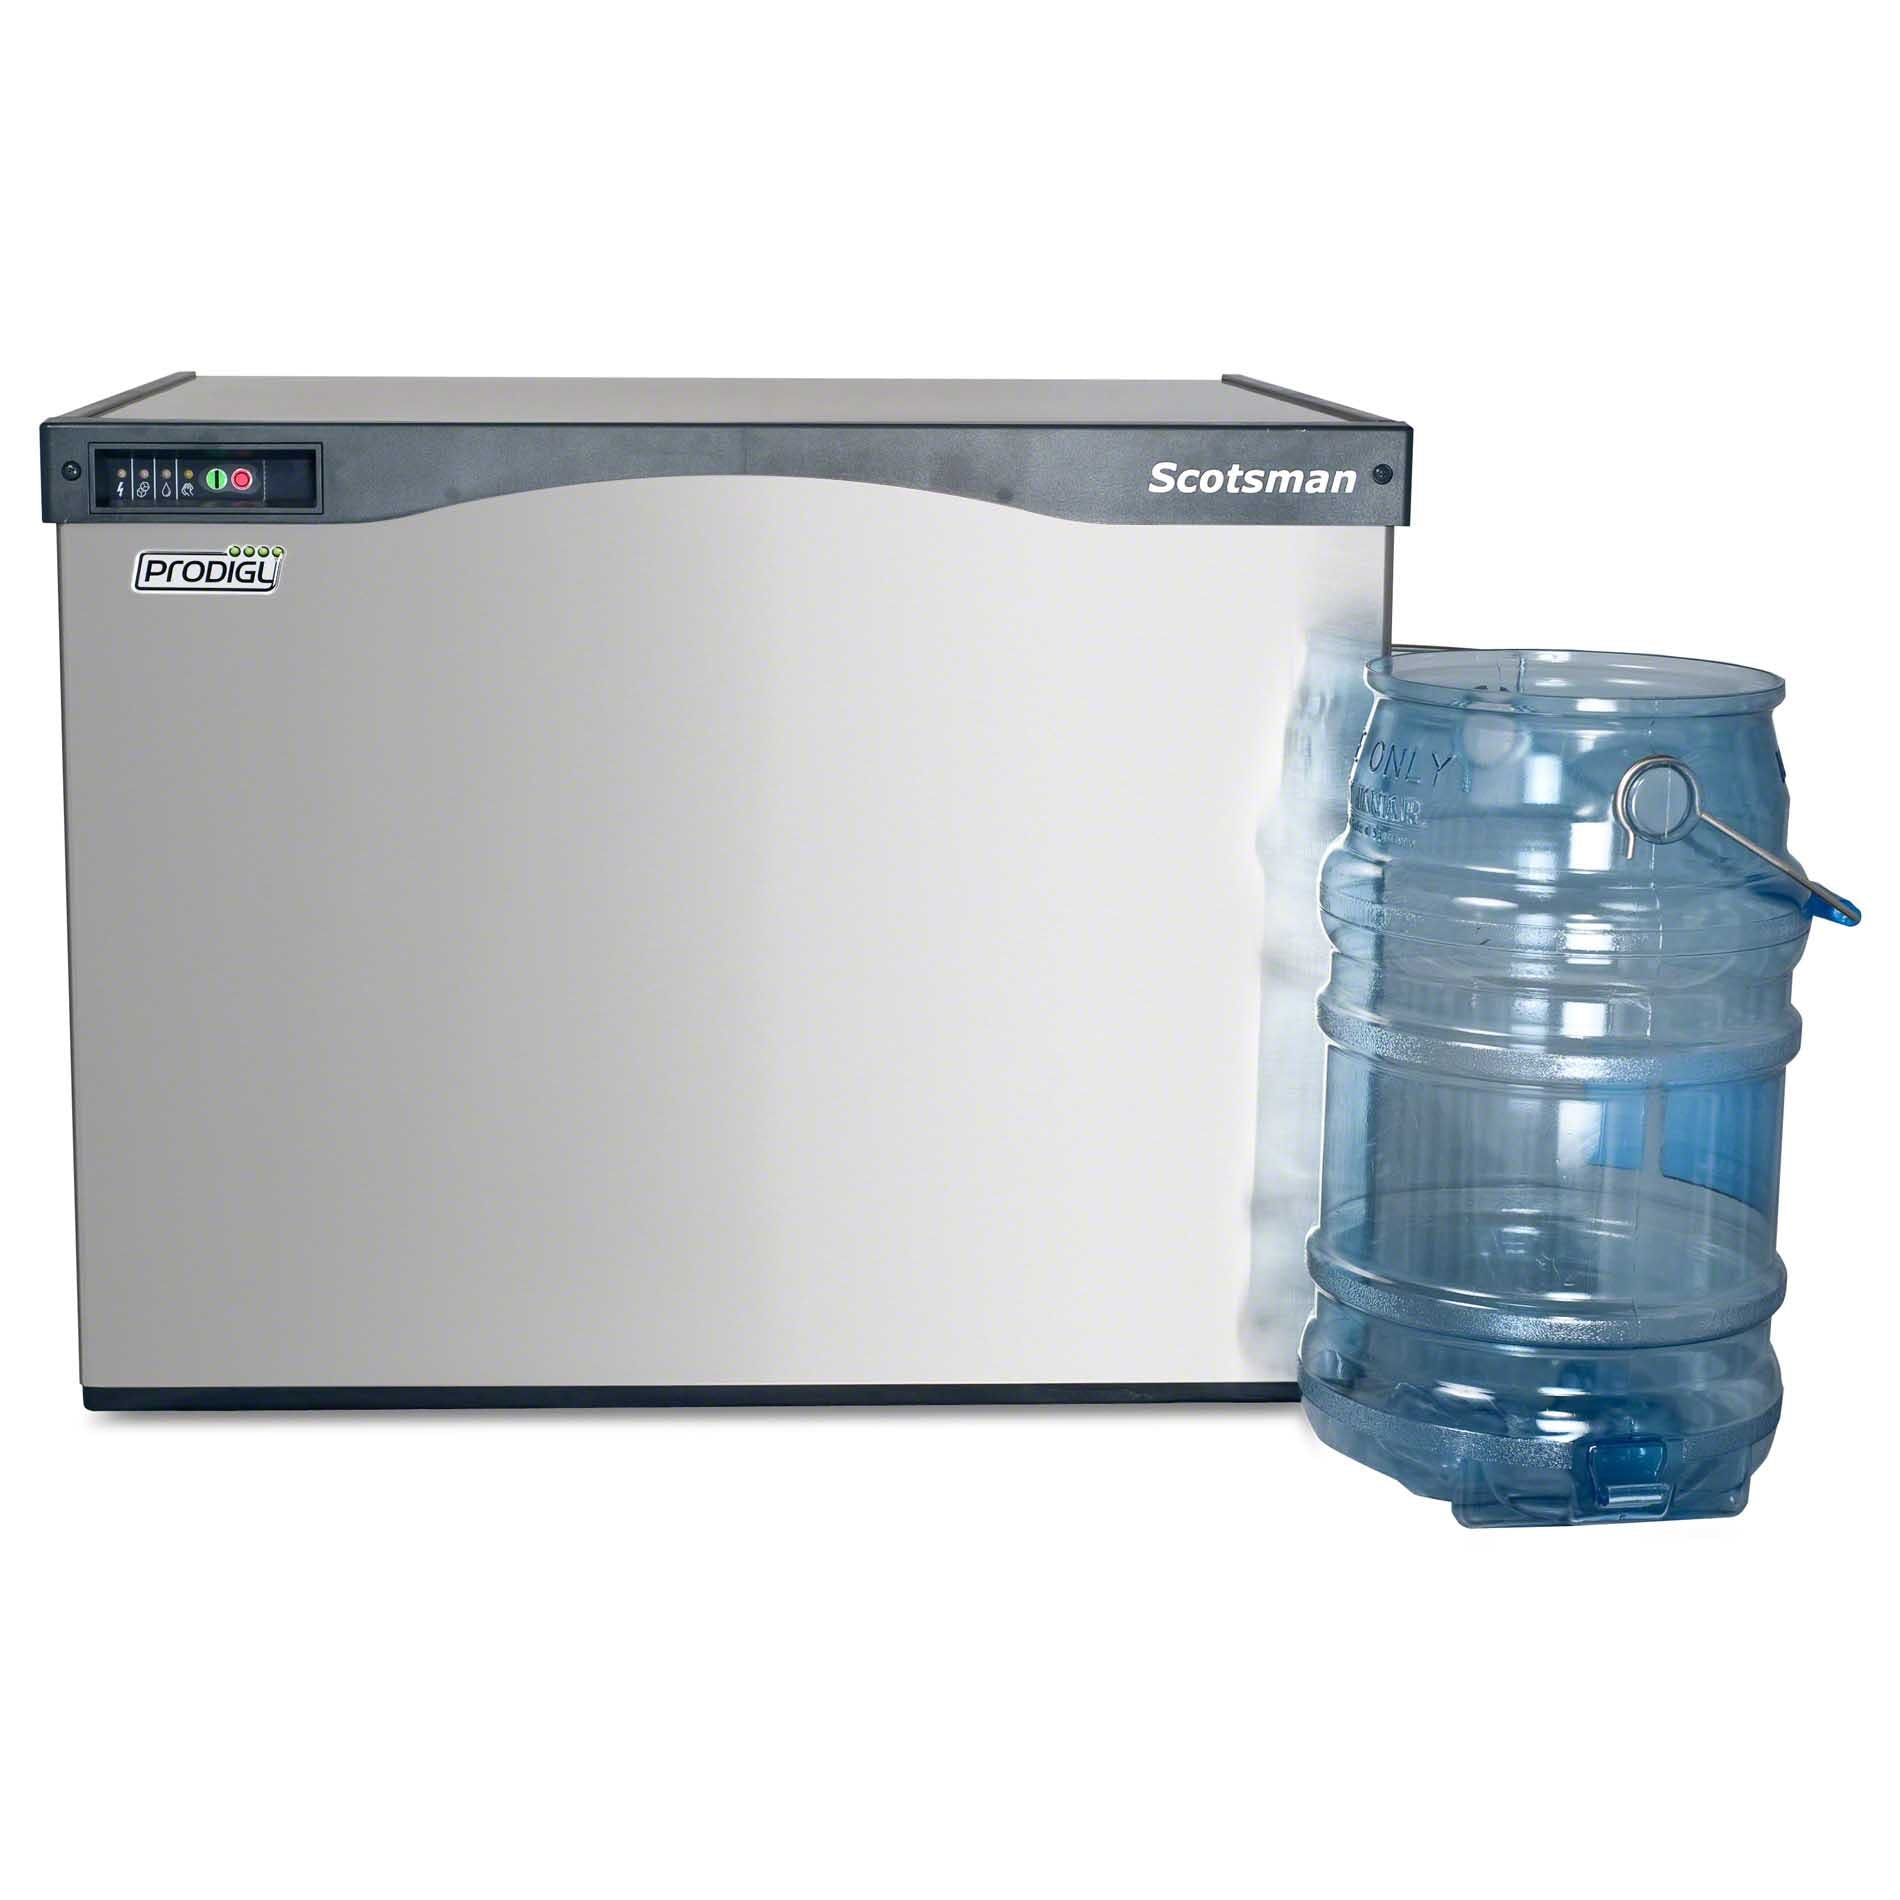 Scotsman - C0330MA-1A 350 lb Full Size Cube Ice Machine - Prodigy Series Ice machine sold by Food Service Warehouse